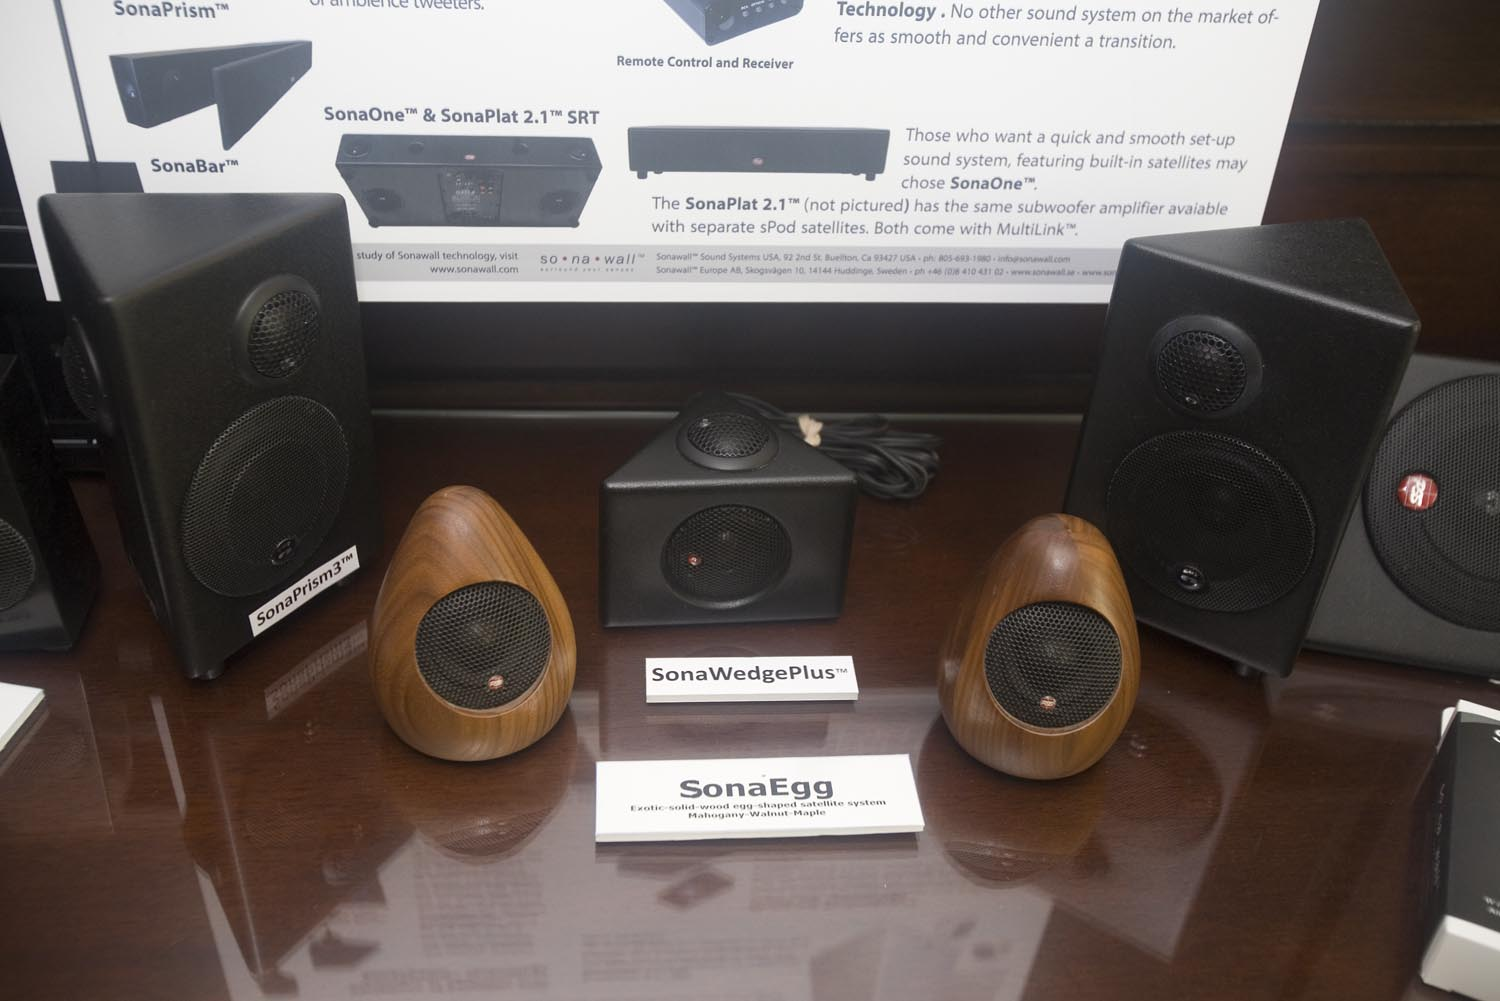 Cdt Audio Sonawall Sound Systems Ces 2015 Federation 1 Set System Img 1632 1633 1635 1636 1637 1638 1639 1640 1641 1642